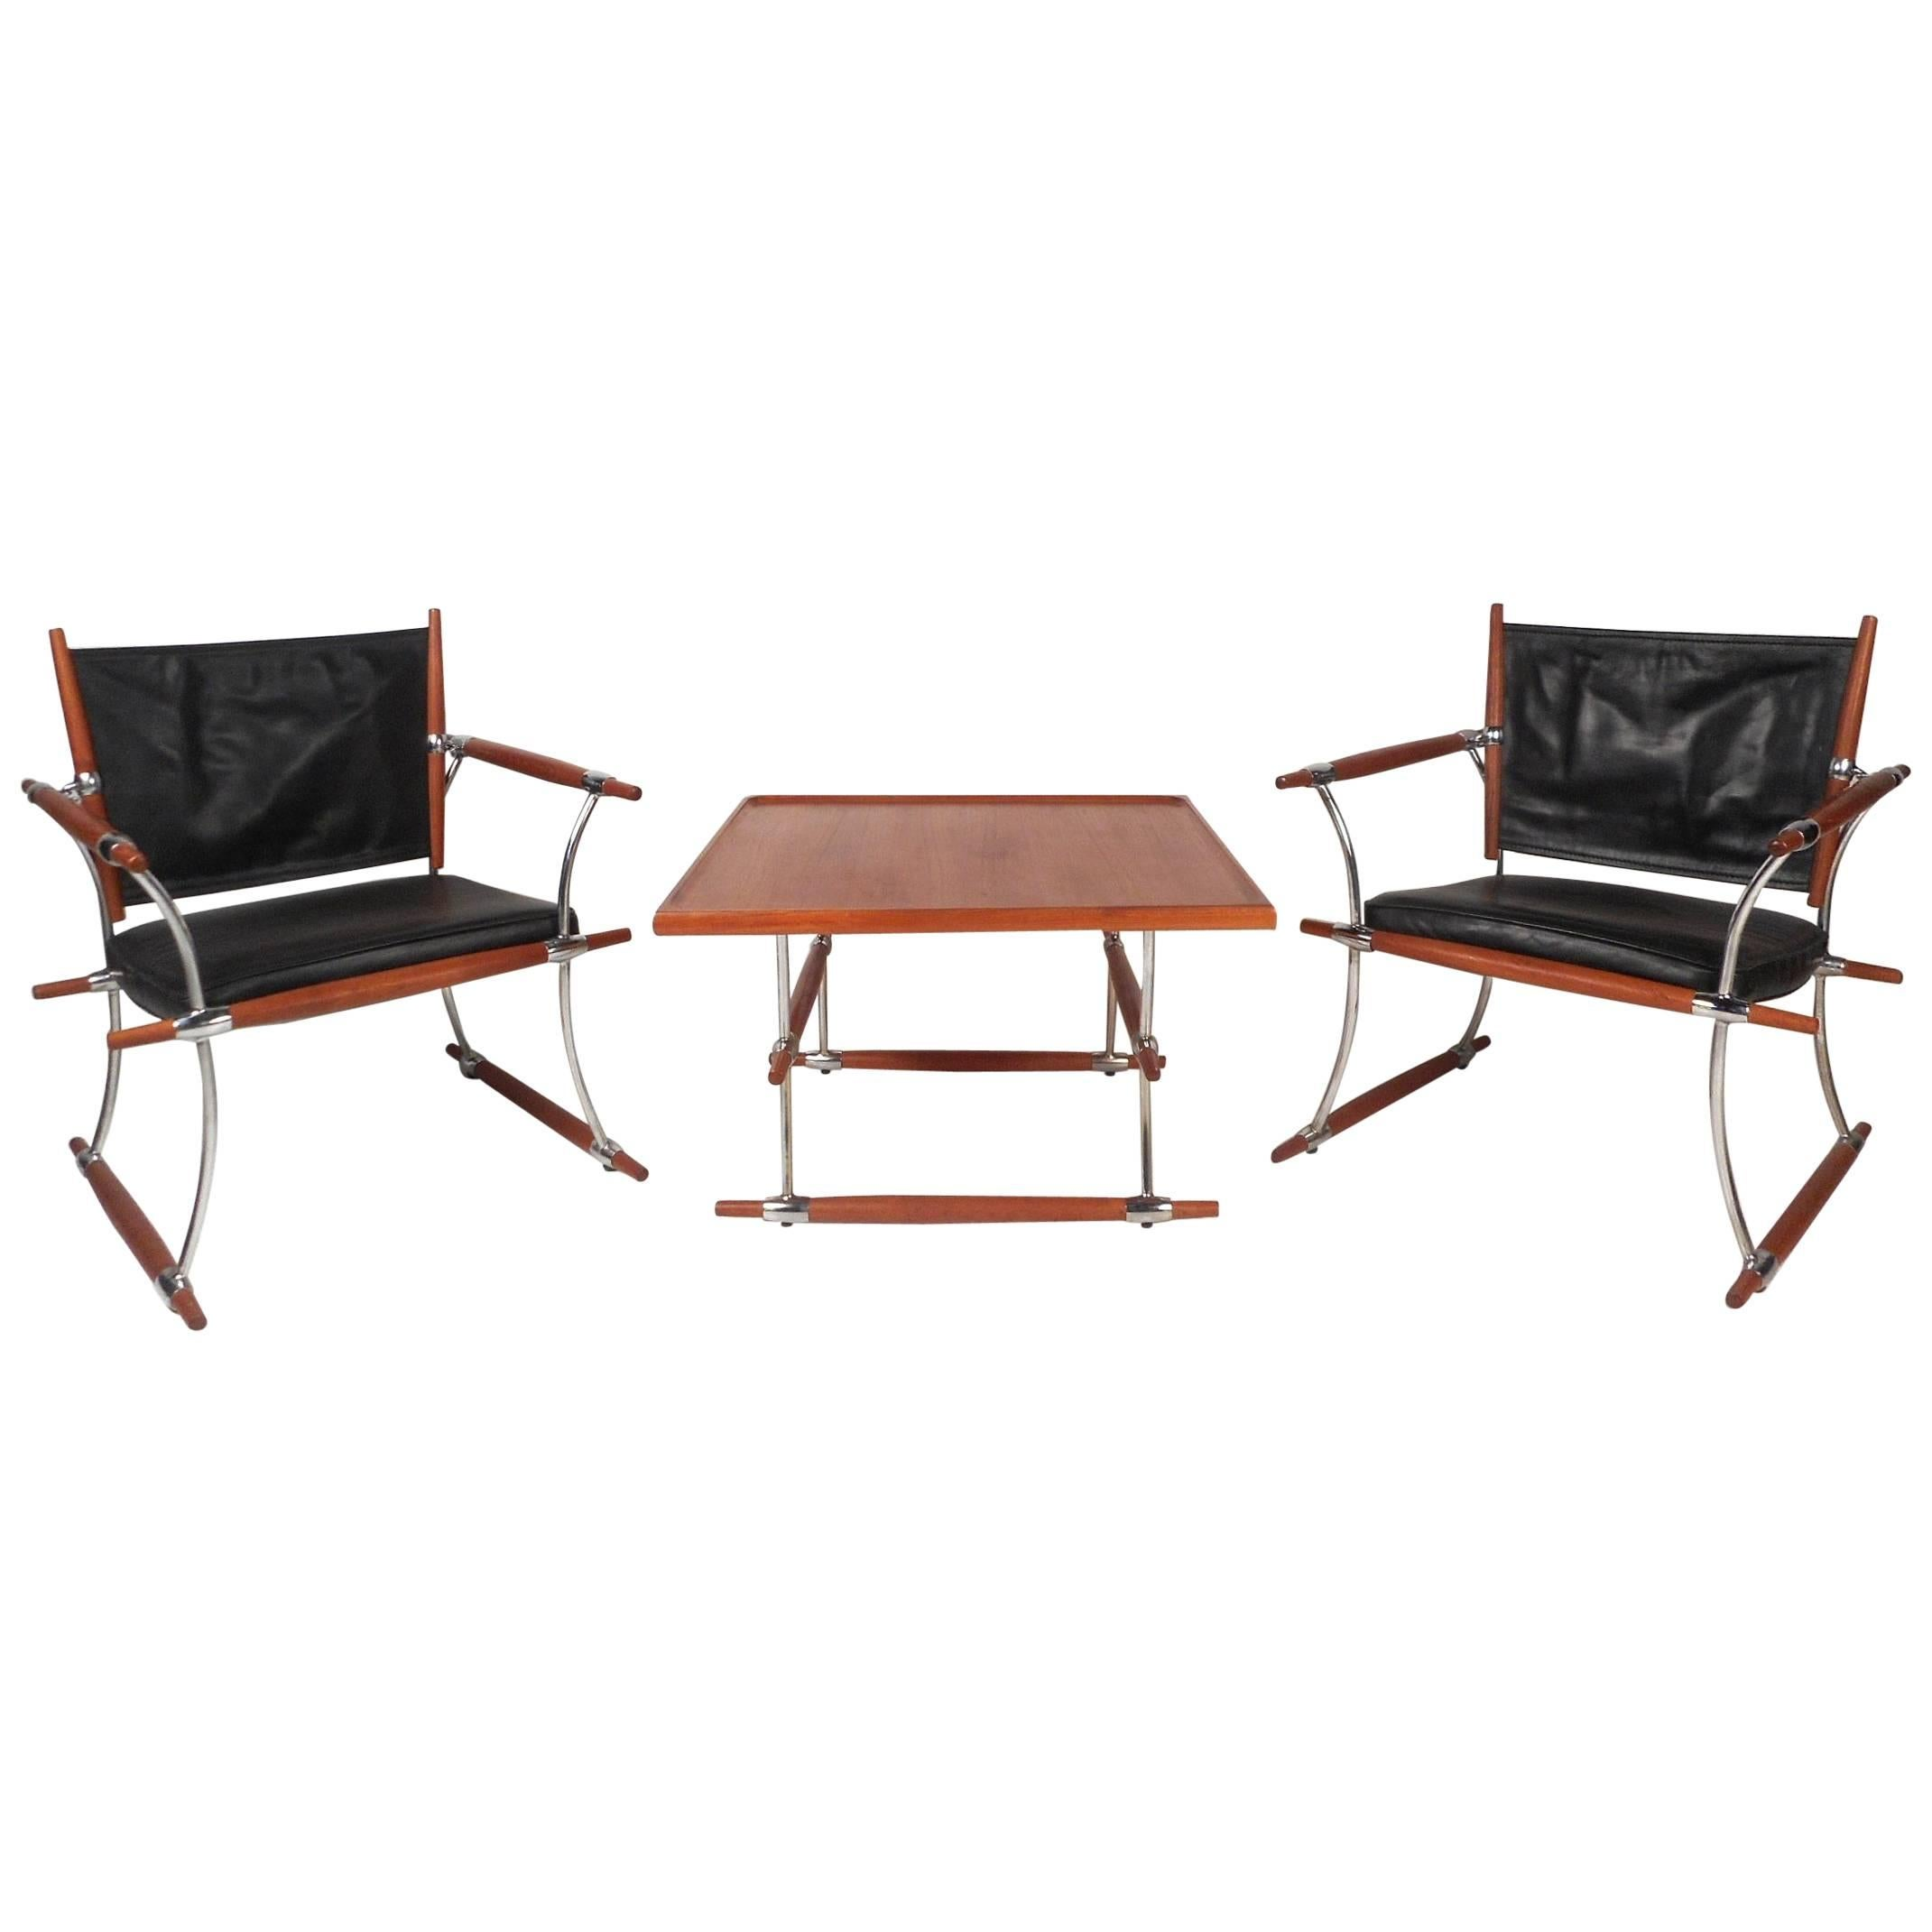 """Exquisite Mid-Century Modern """"Stokke"""" Jens Quistgaard Lounge Chairs and Table"""